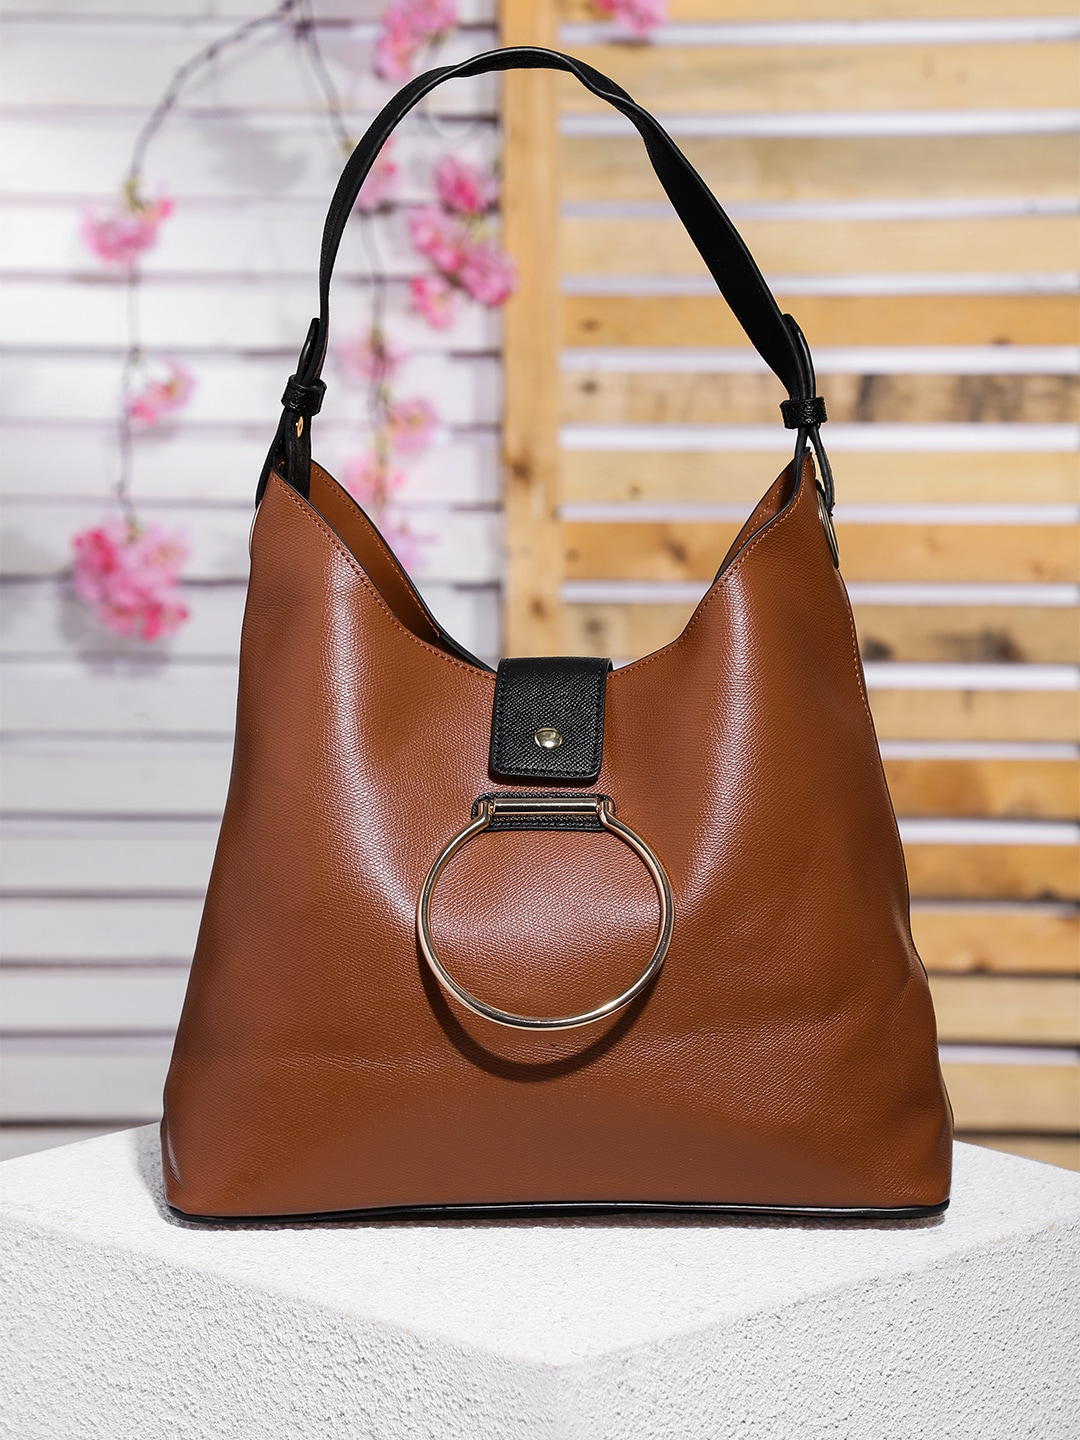 19f03d3062 Handbags And Bags - Buy Handbags And Bags online in India